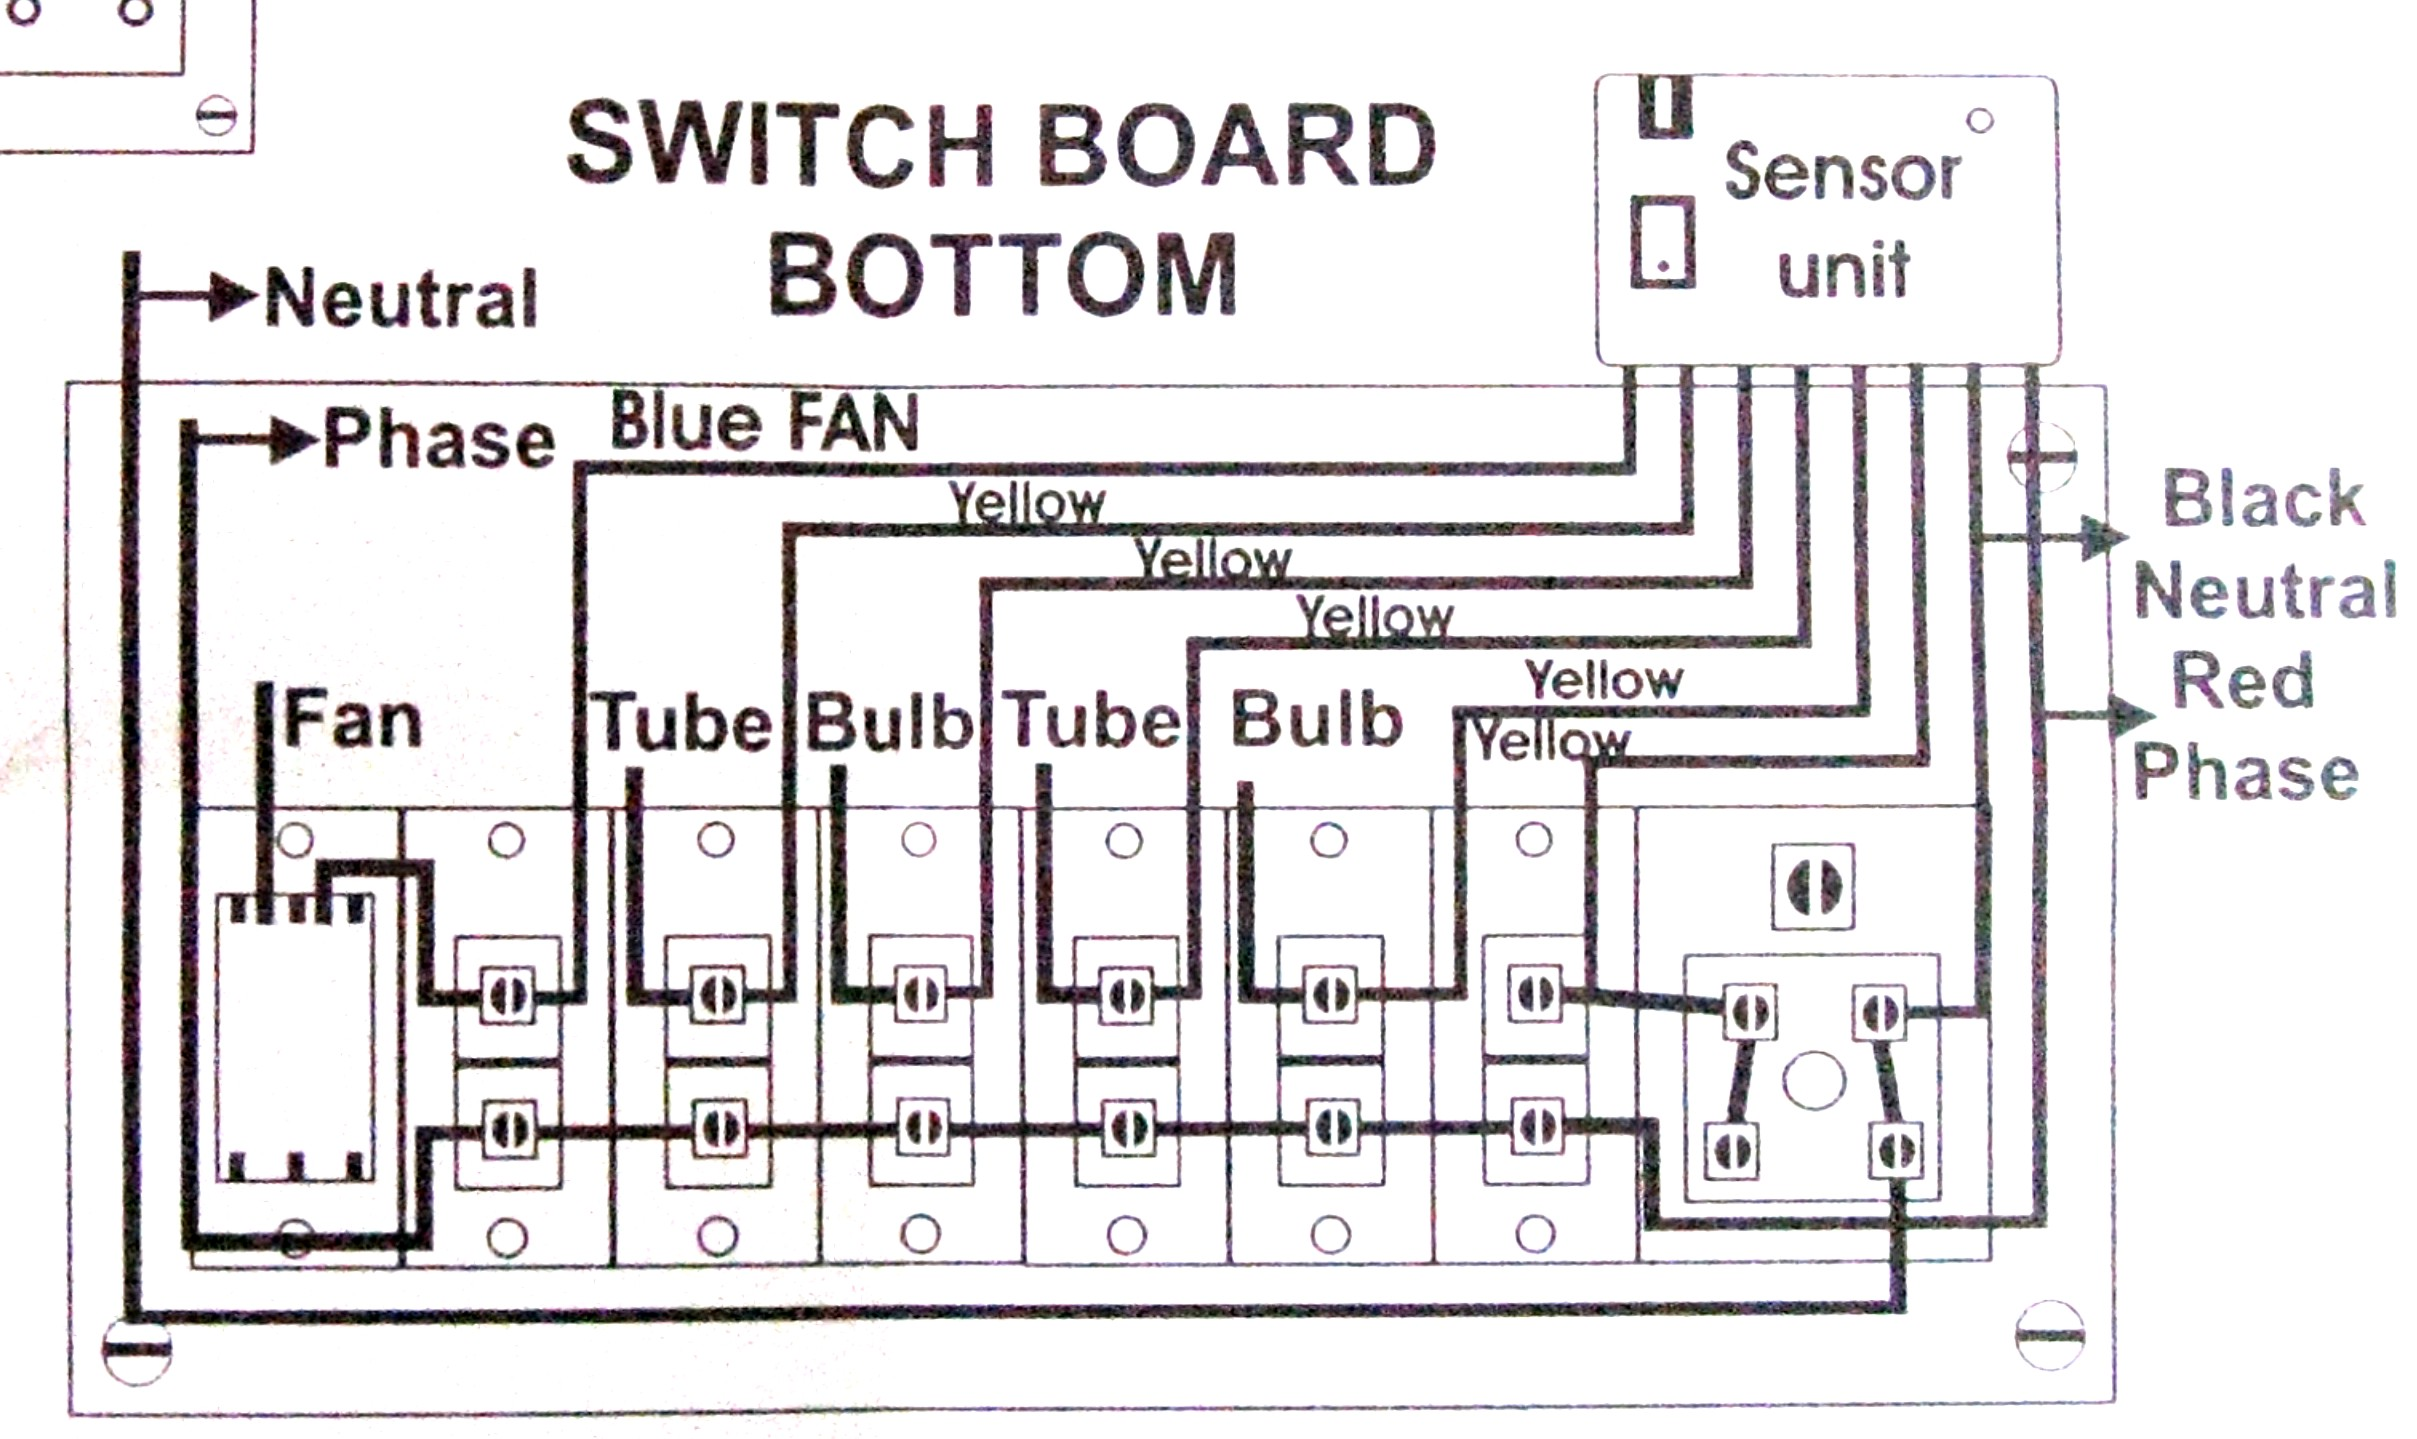 Sn 8769 Switchboard Wiring Diagram